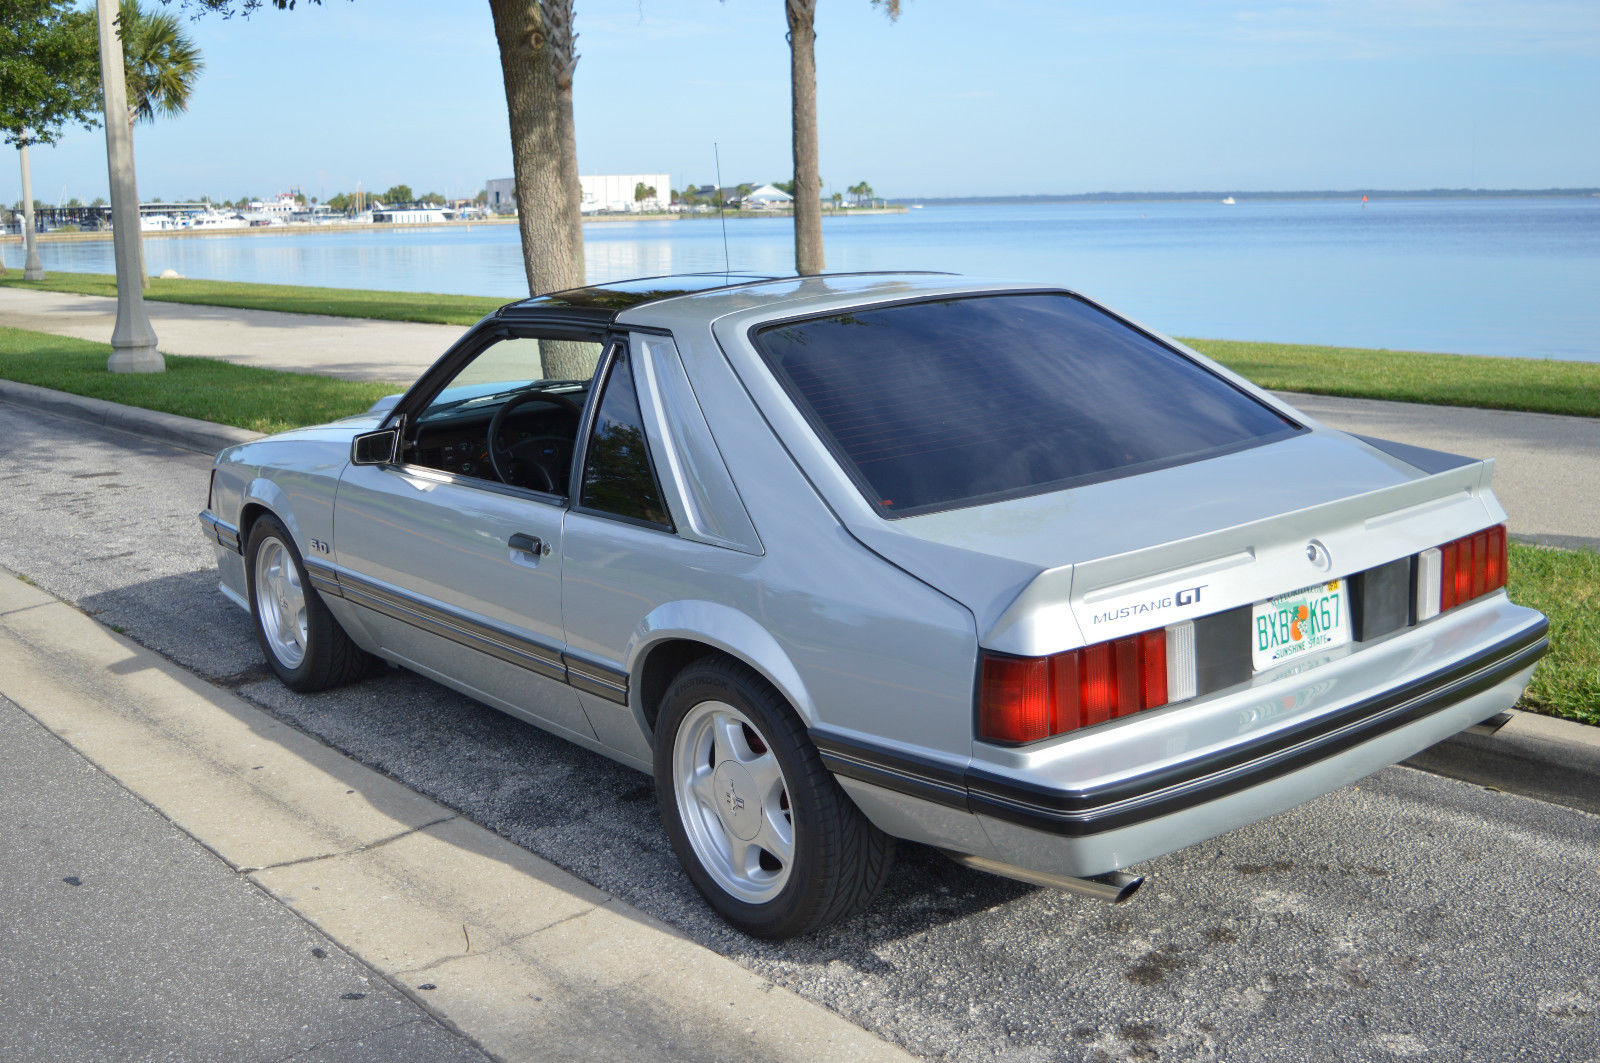 1982 Mustang Gt T Top Classic Ford Mustang 1982 For Sale